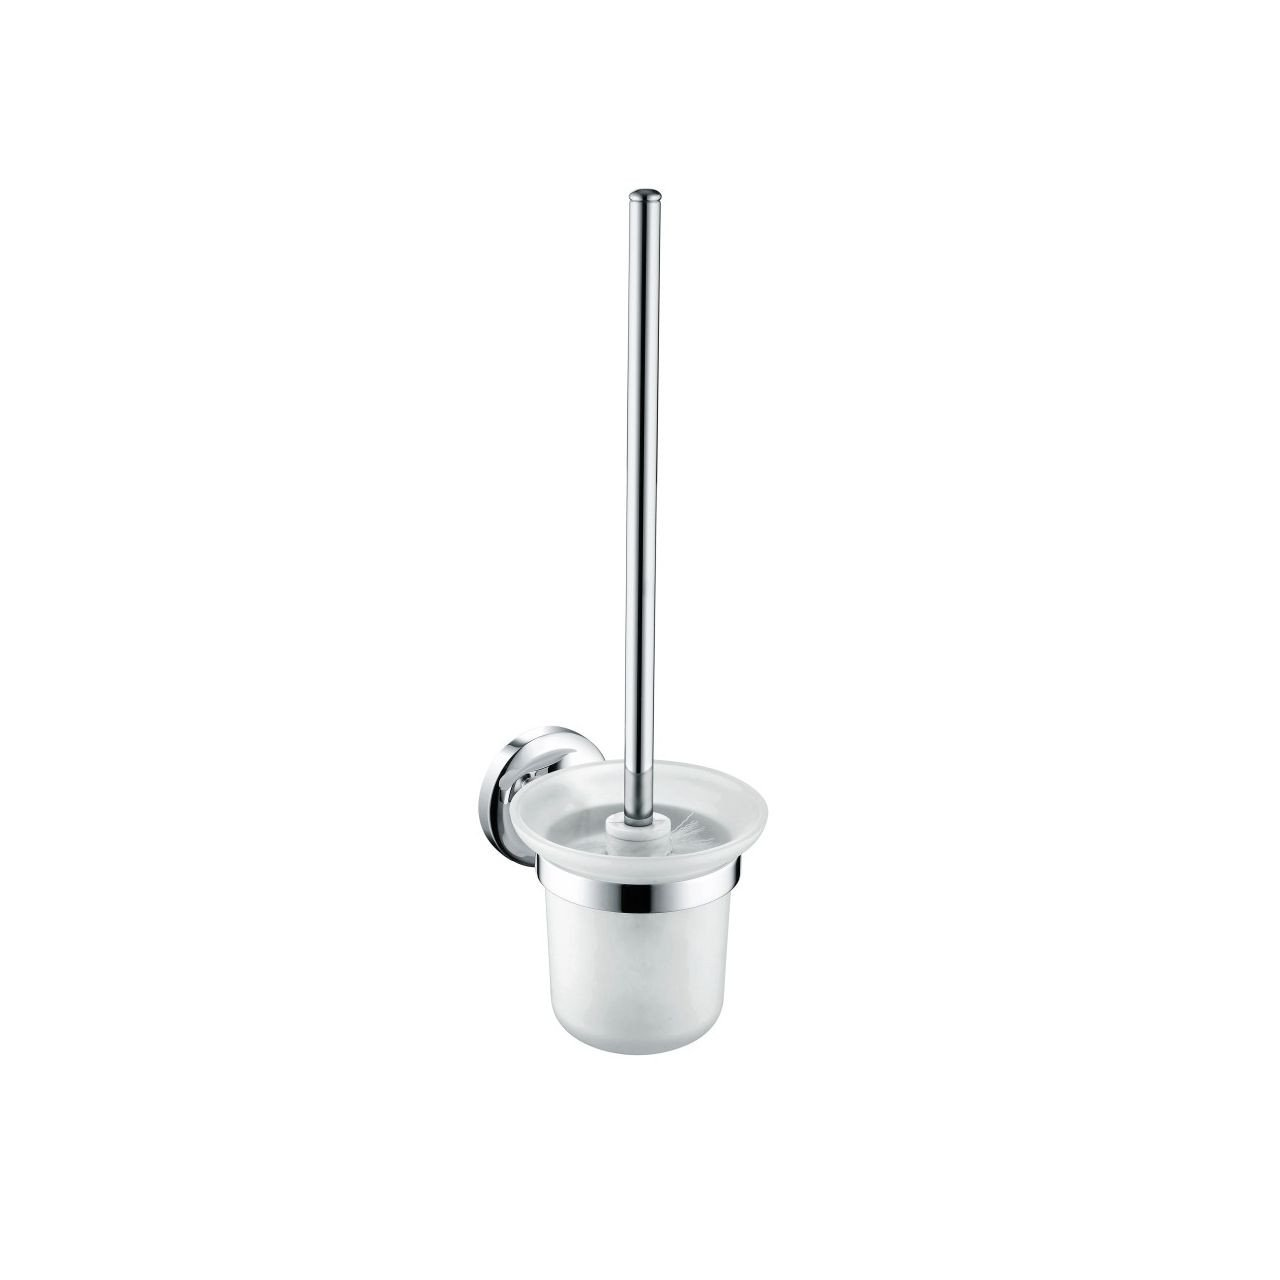 Bristan Solo Chrome Wall Mounted Toilet Brush and Holder - SO-WHBRU-C